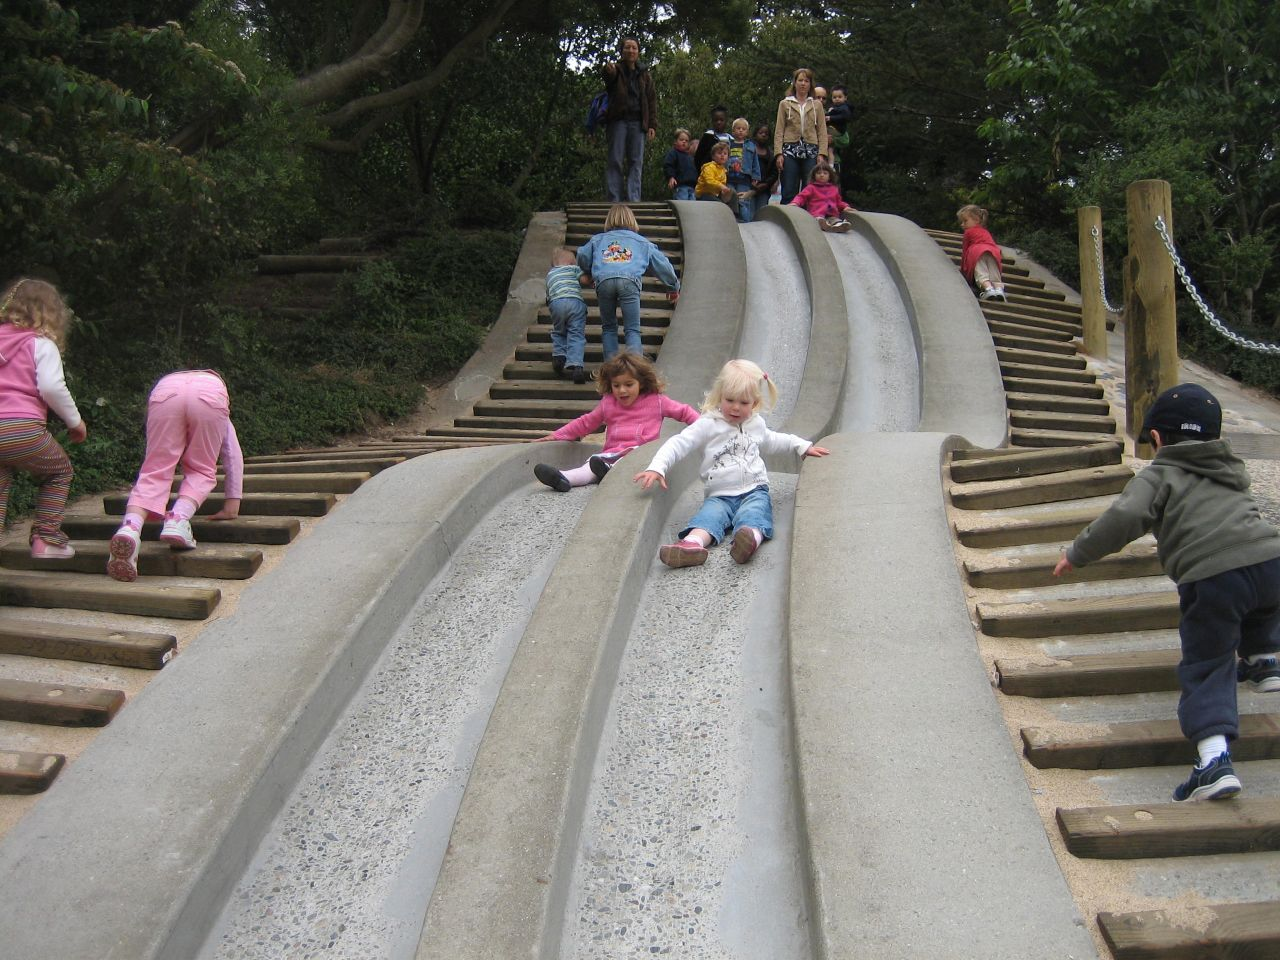 Big Slide or Not Avisable for a Two Year Old